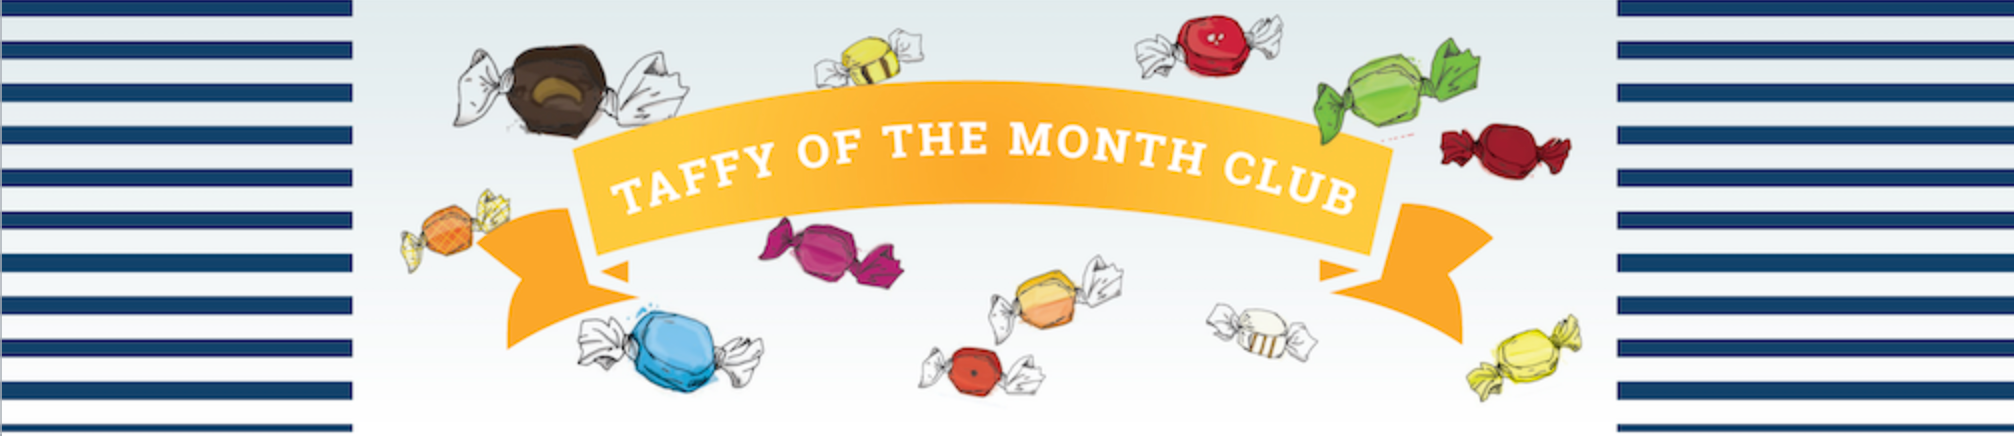 Cabot's Taffy of the Month Club